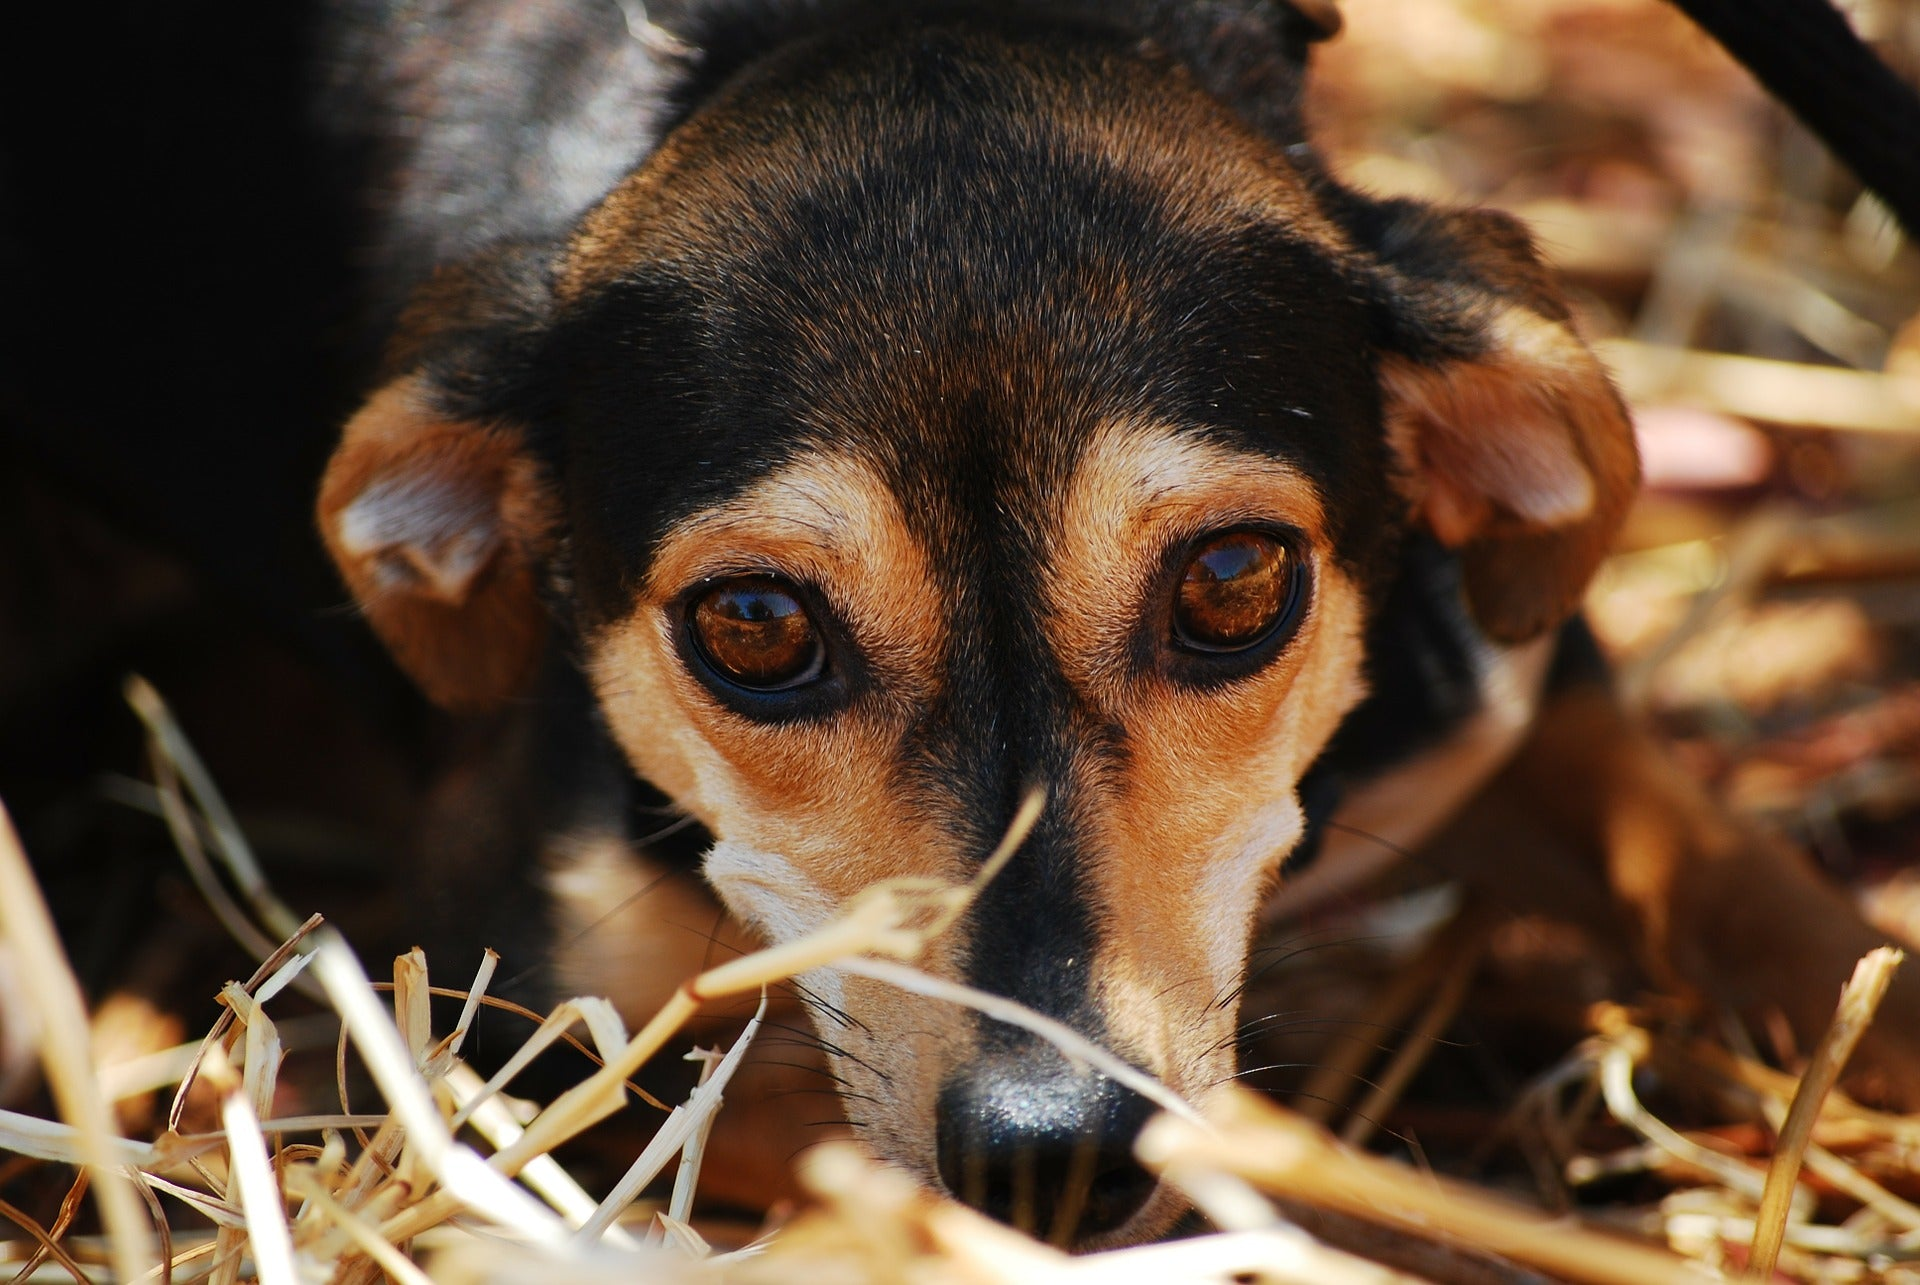 Nervous Dog? Here Are 5 Ways To Build Confidence In Your Pet